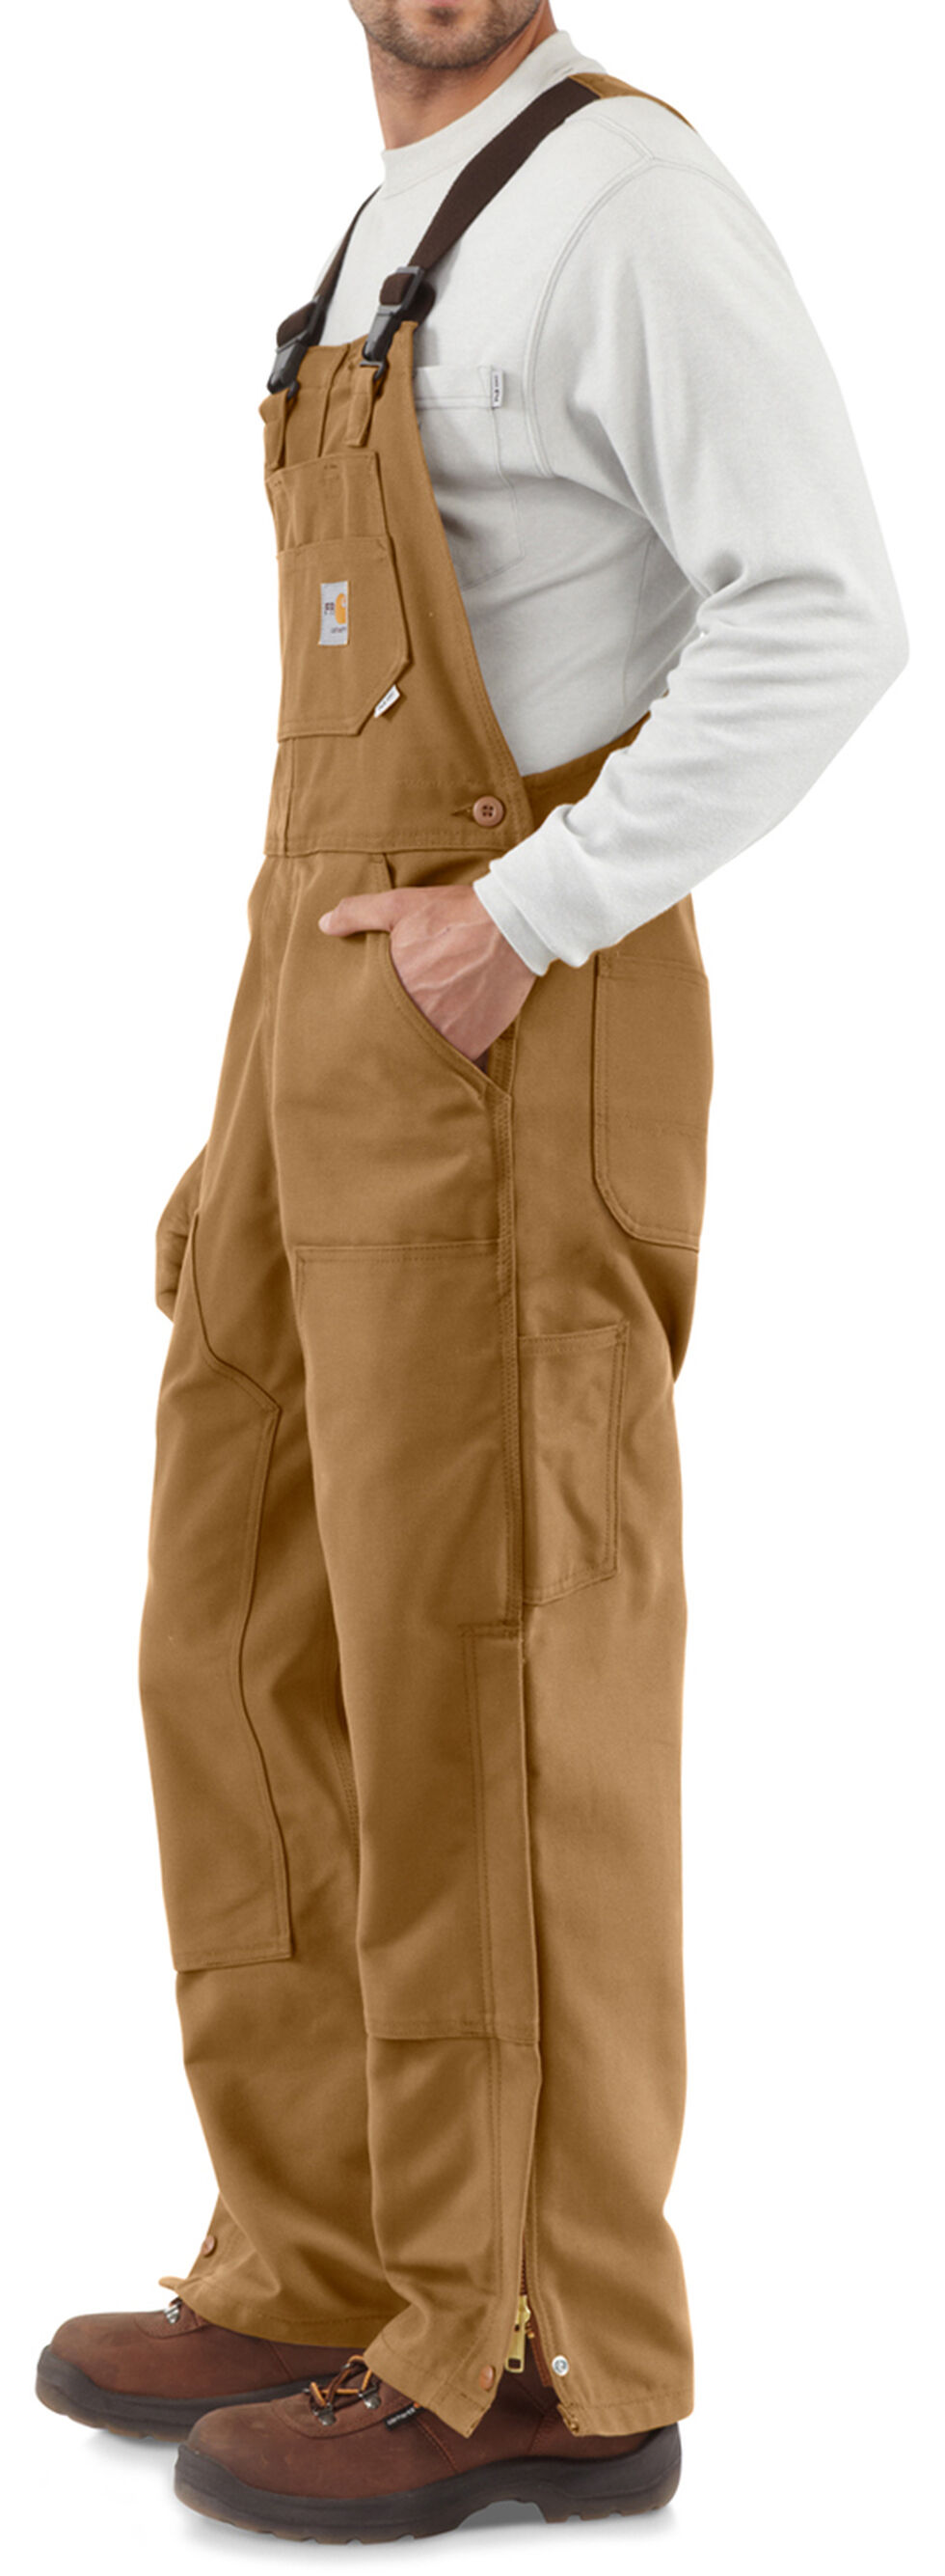 Carhartt Men's Flame-Resistant Duck Bib Overalls - Big & Tall, Carhartt Brown, hi-res